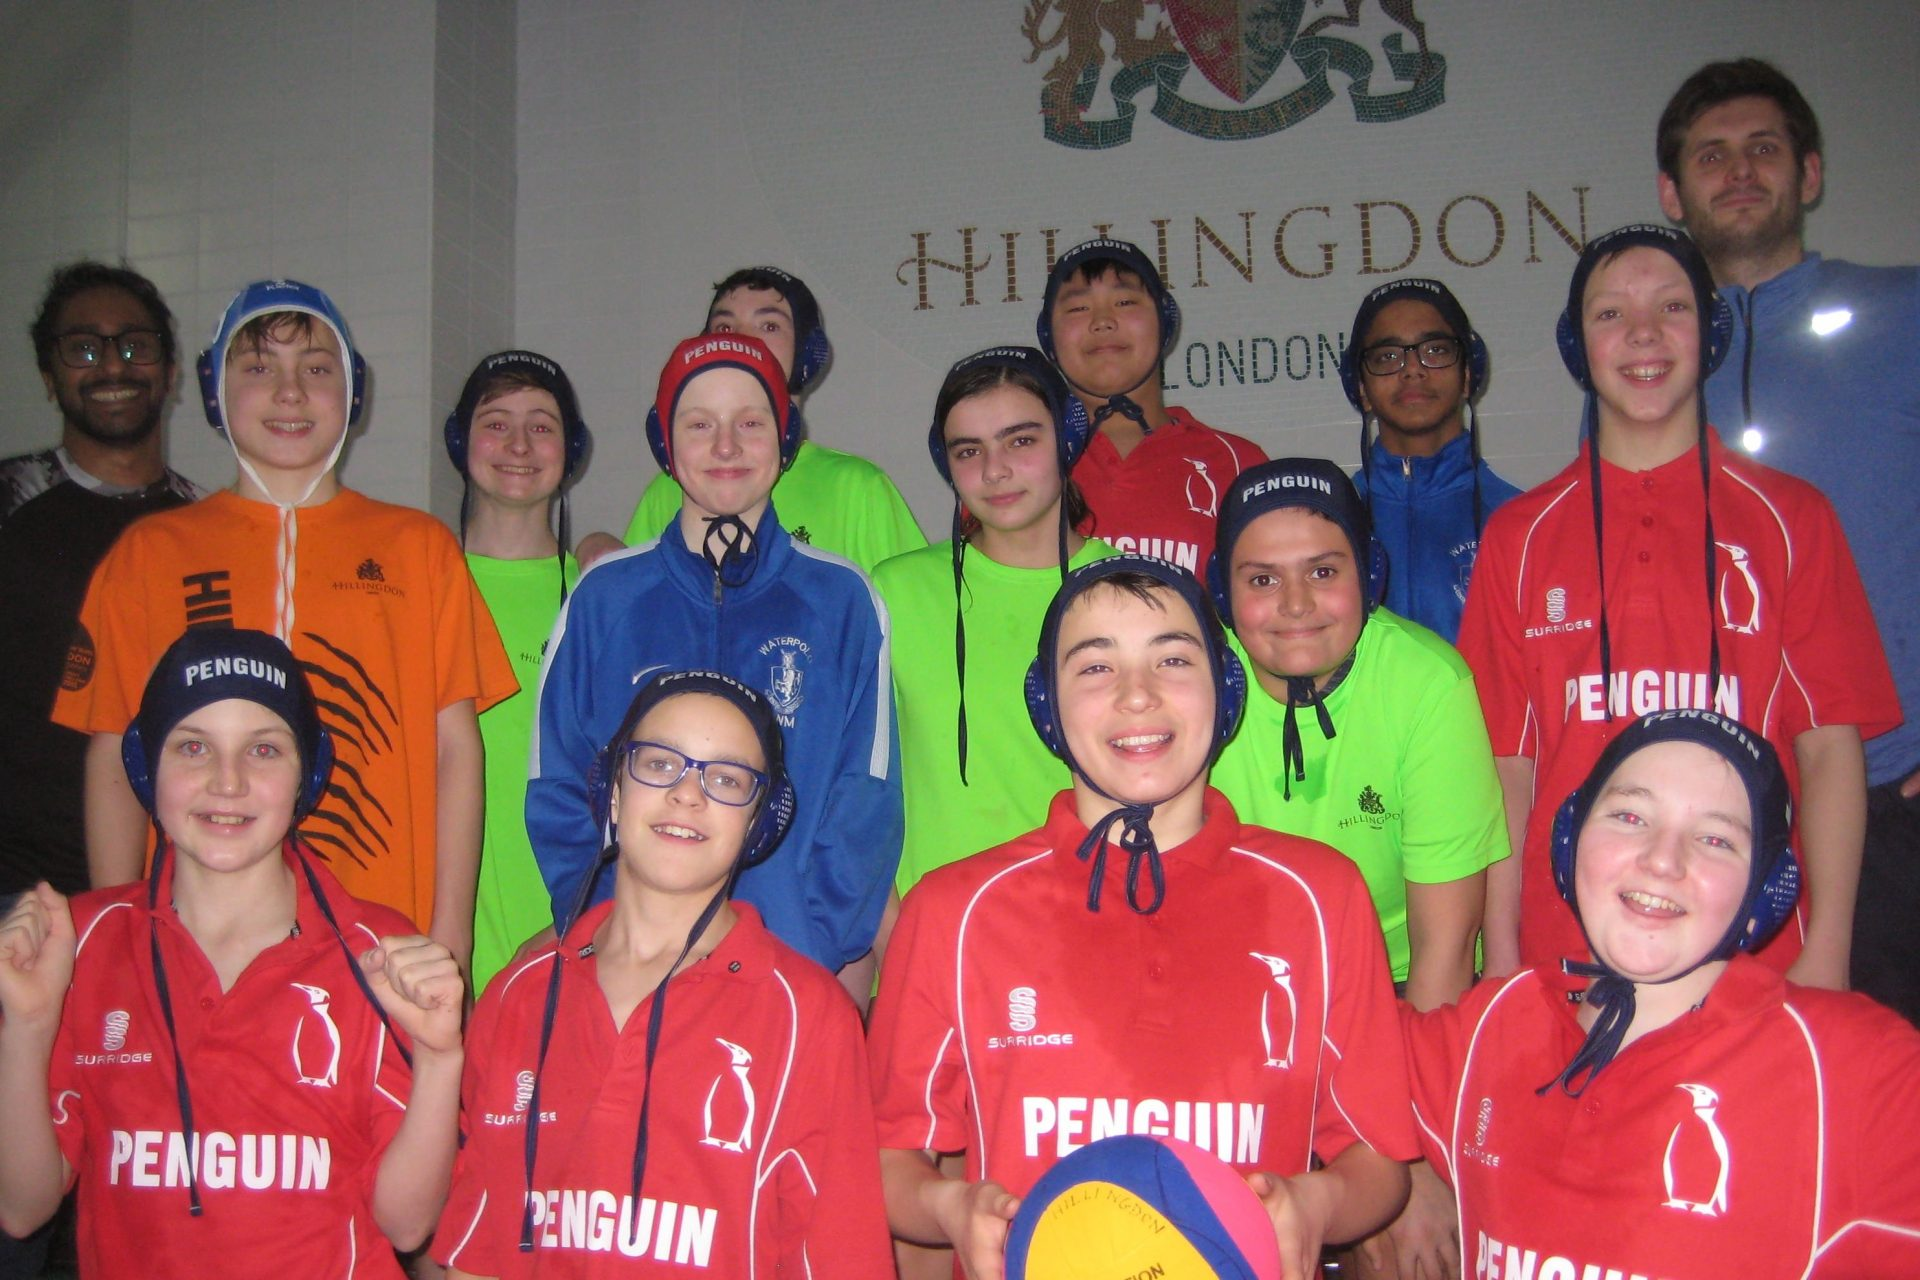 Hillingdon Penguin U14s London League Winter Championships